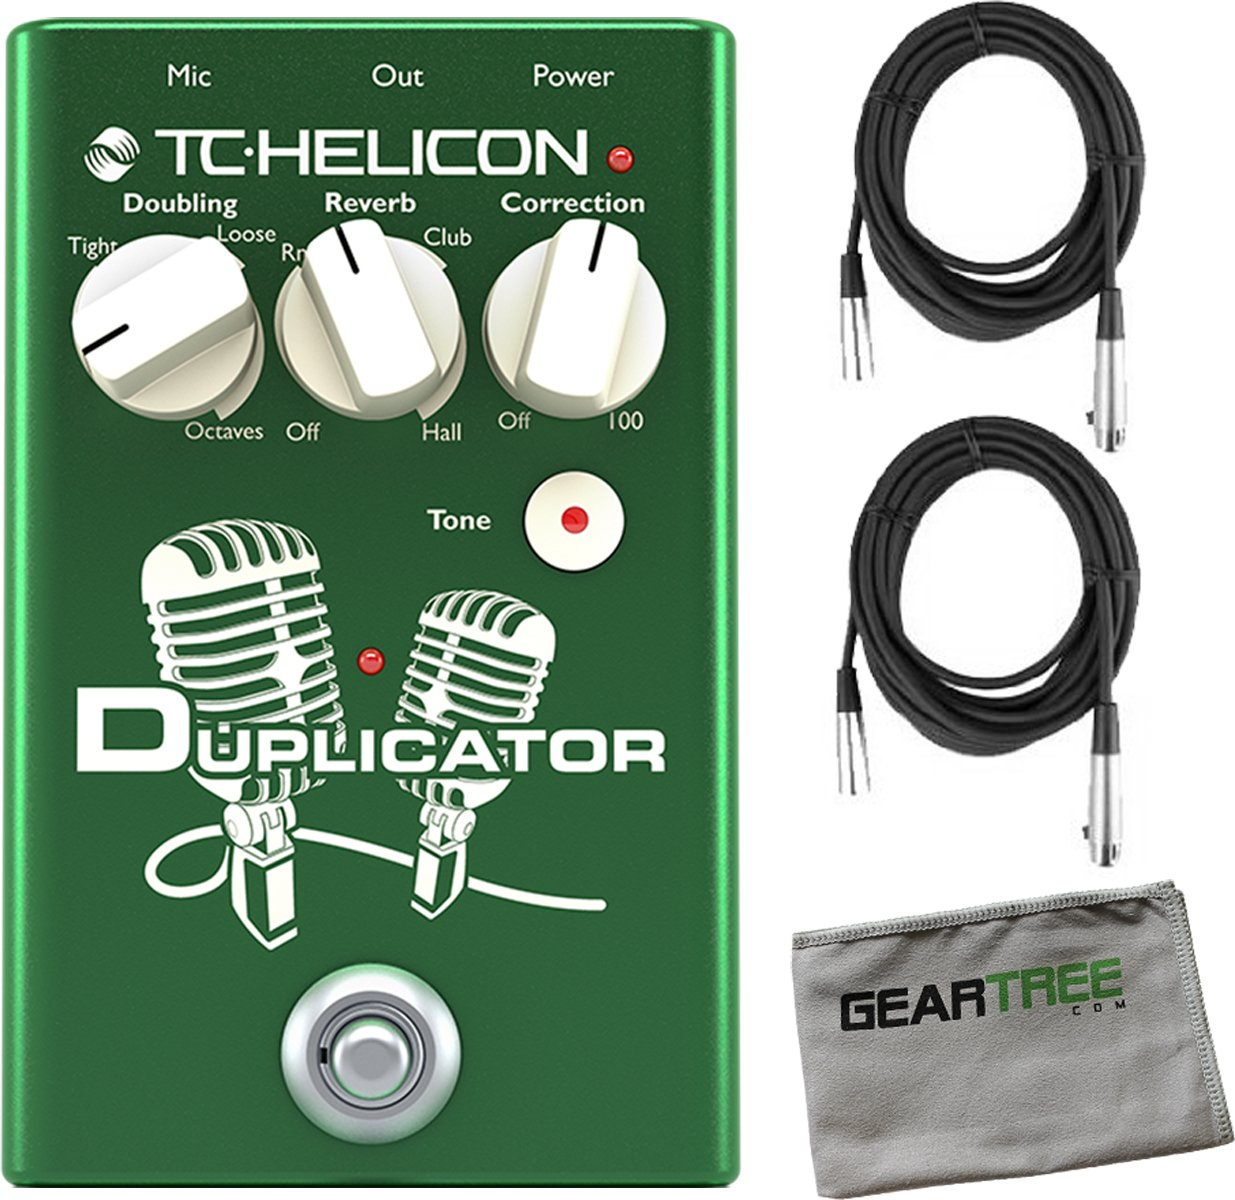 TC Helicon 996372001 TC Helicon DUPLICATOR Vocal Effects Pedal w/ 2 XLR Cables and Geartree Cloth